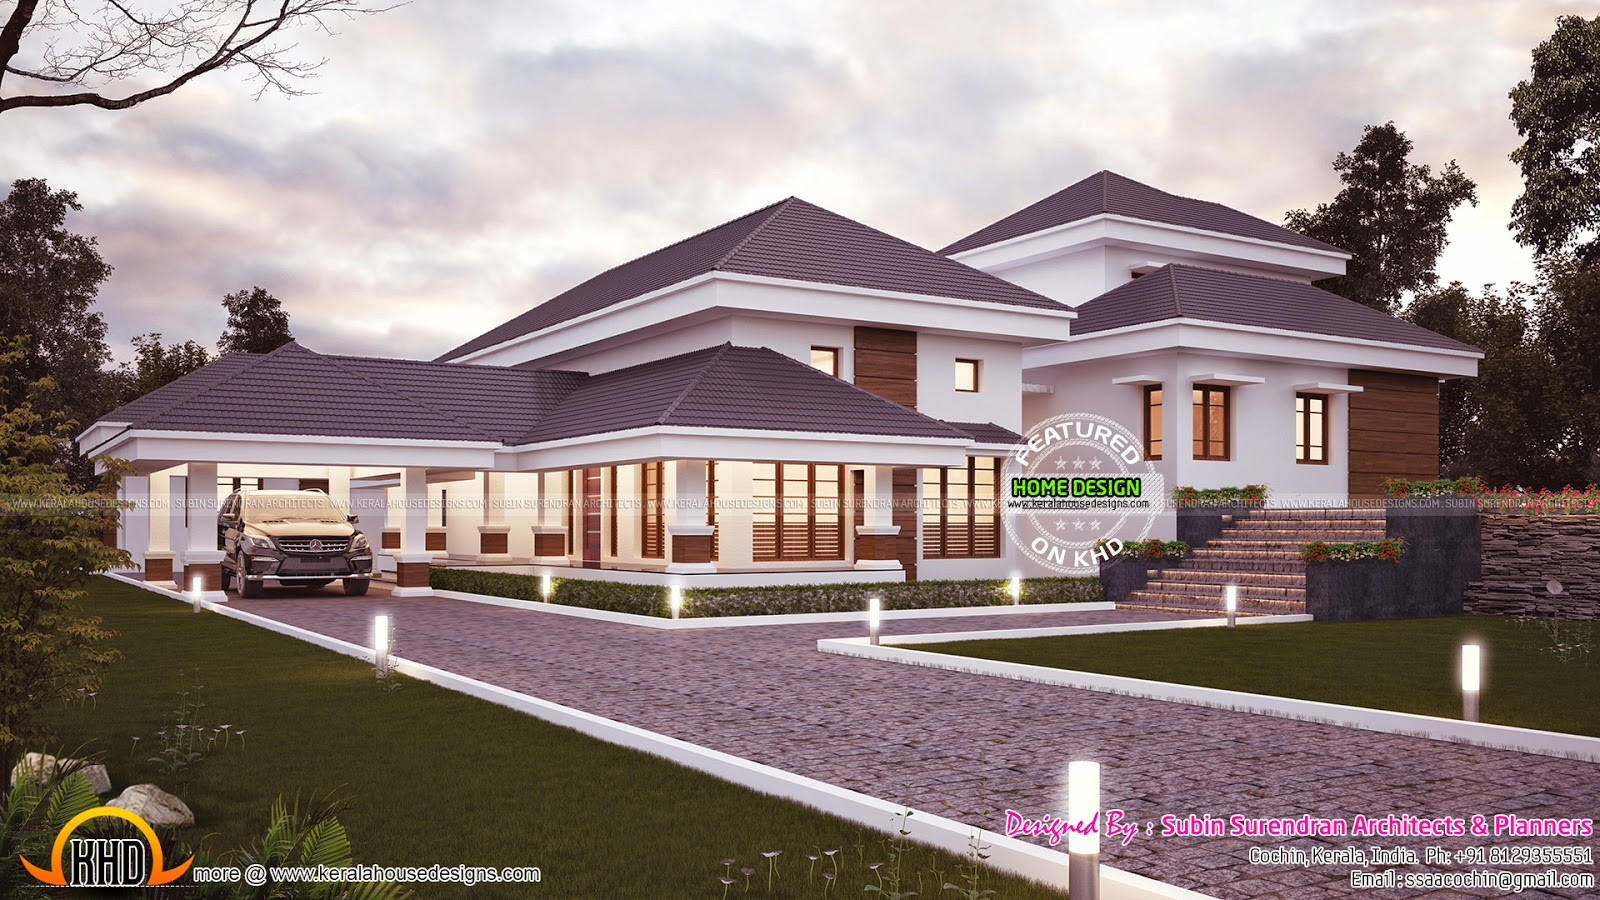 1000 images about magnificent houses which i admire on for Home plans designs kerala